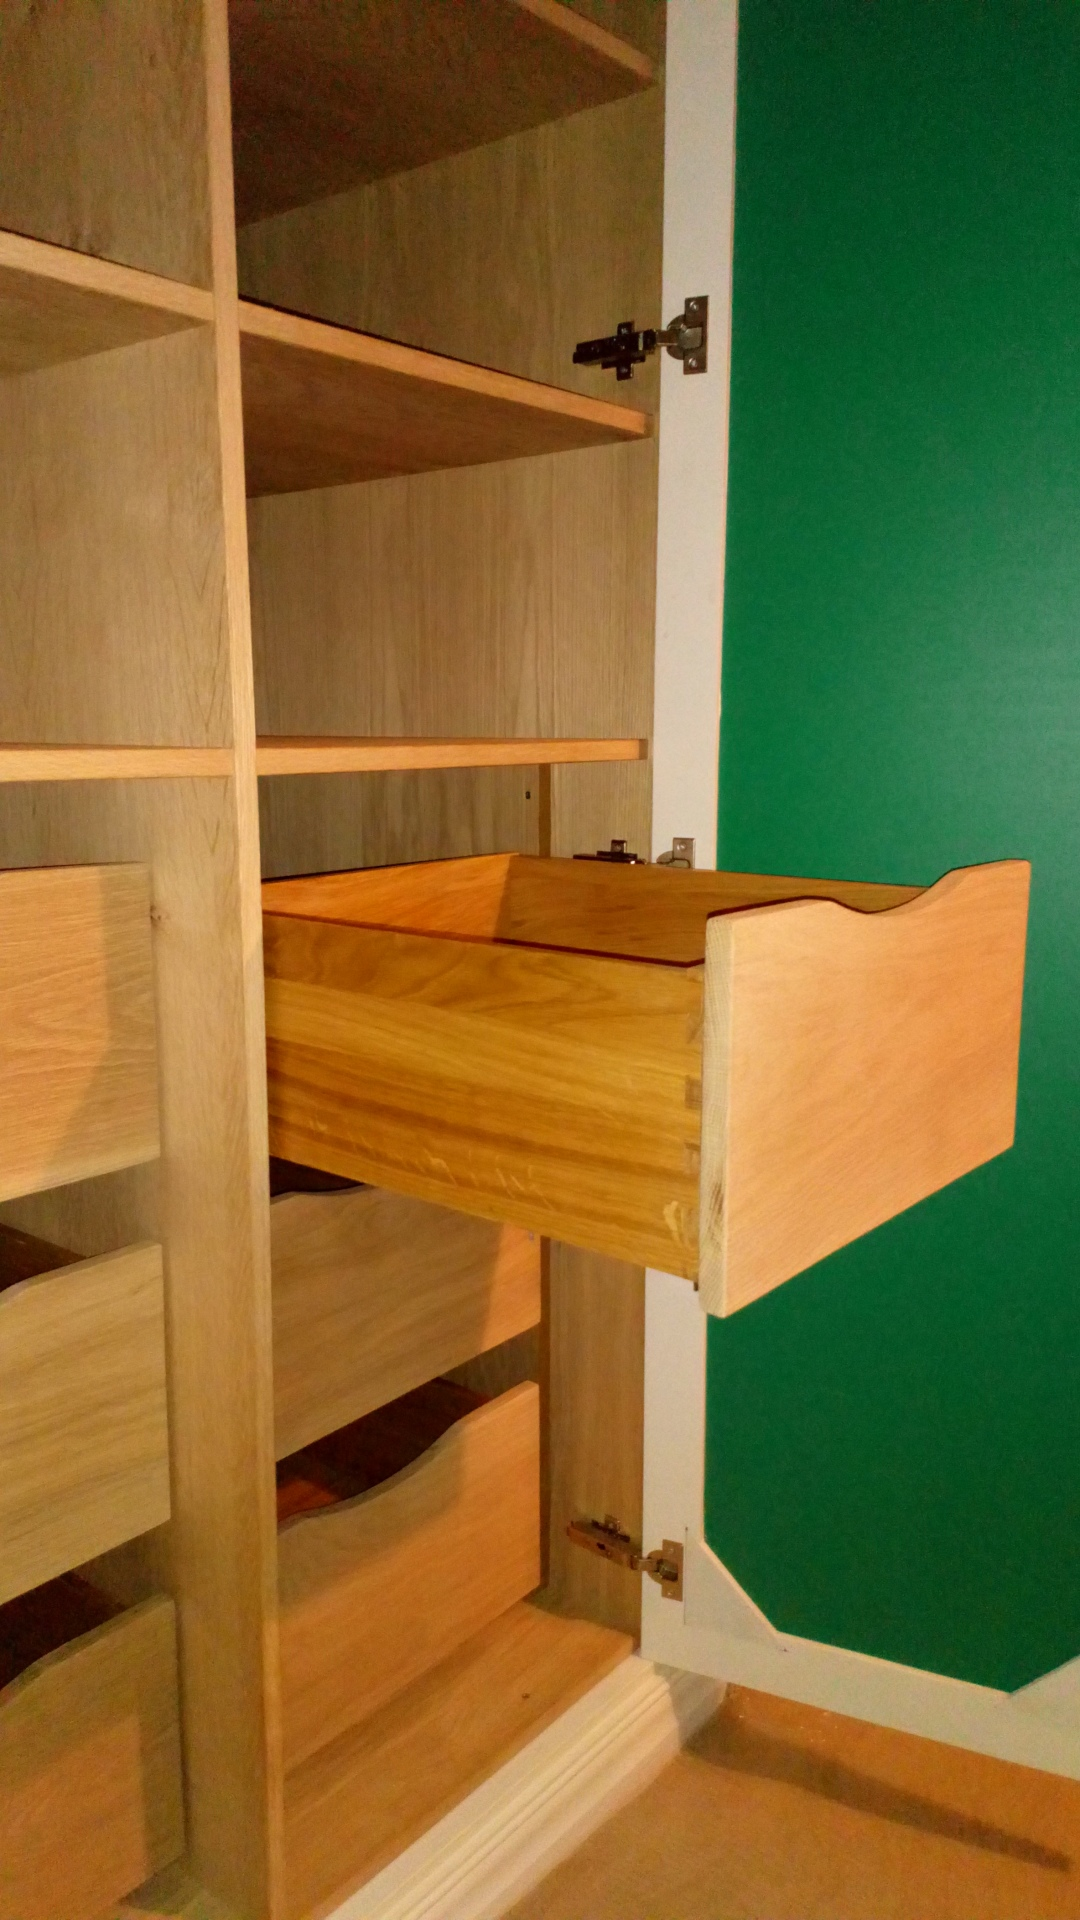 Solid Oak Dovetail drawers